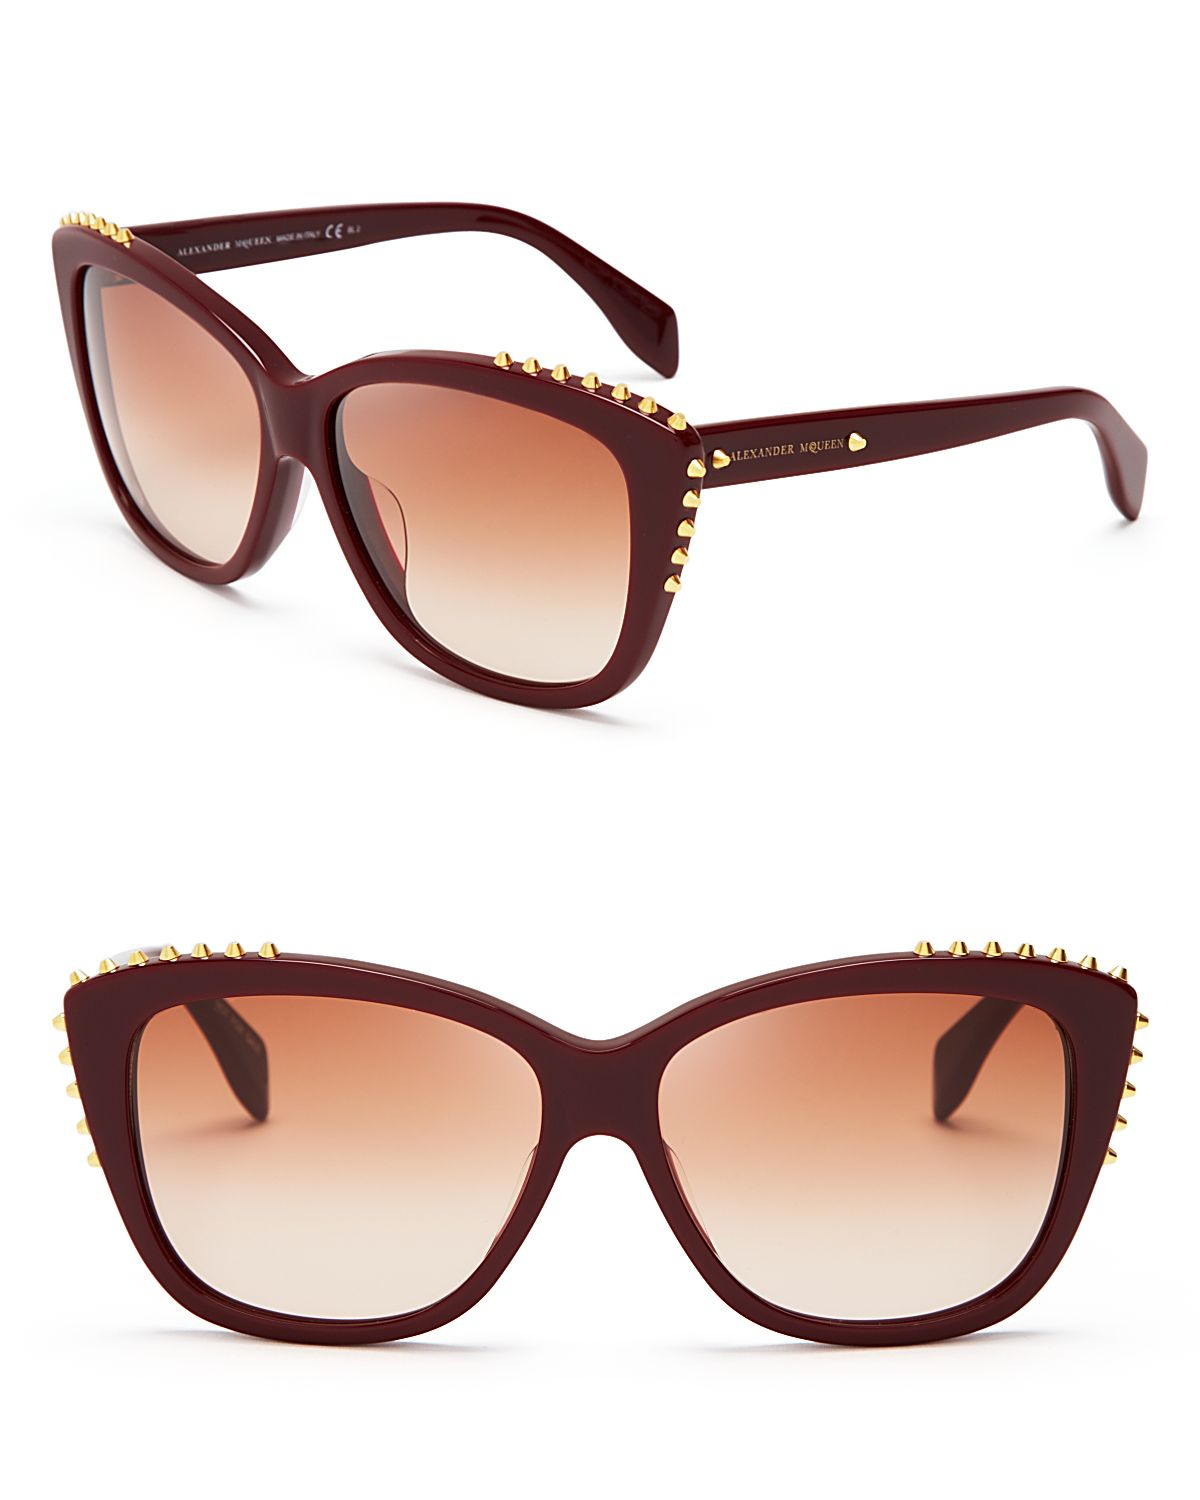 Alexander Mcqueen Cateye Sunglasses  alexander mcqueen spiked cat eye sunglasses in green lyst